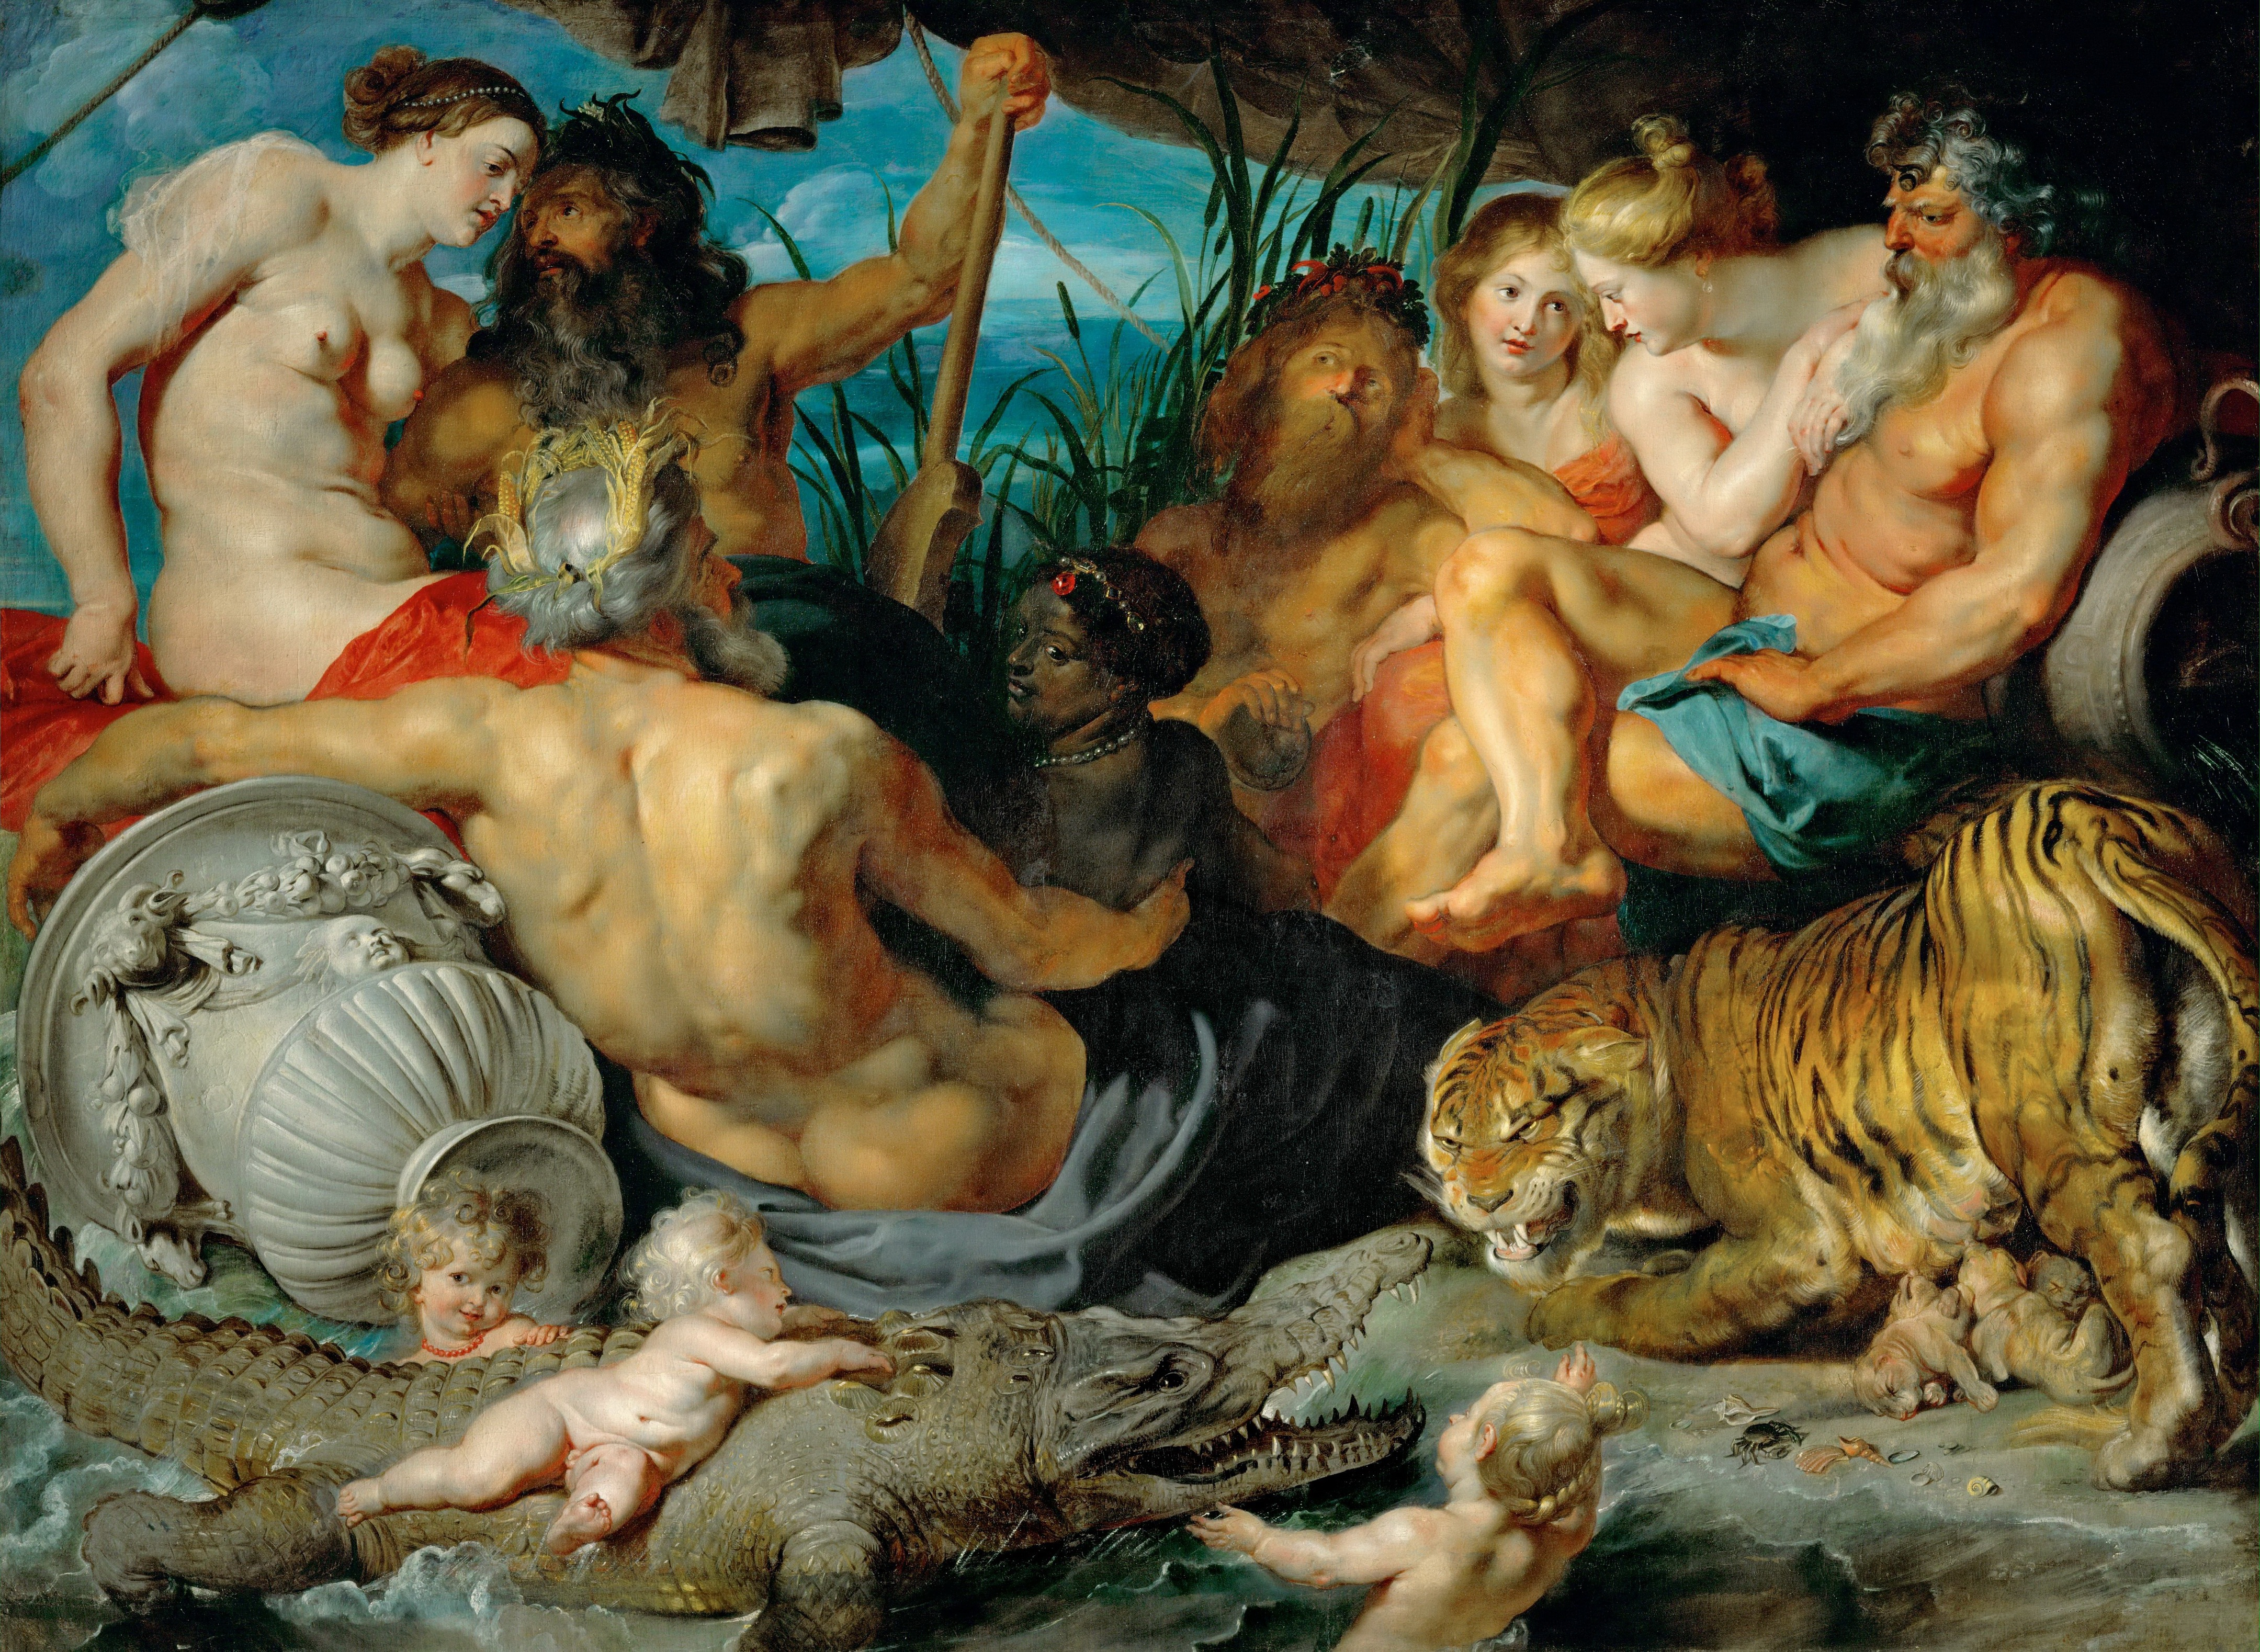 https://upload.wikimedia.org/wikipedia/commons/7/70/Peter_Paul_Rubens_-_The_Four_Continents.jpg